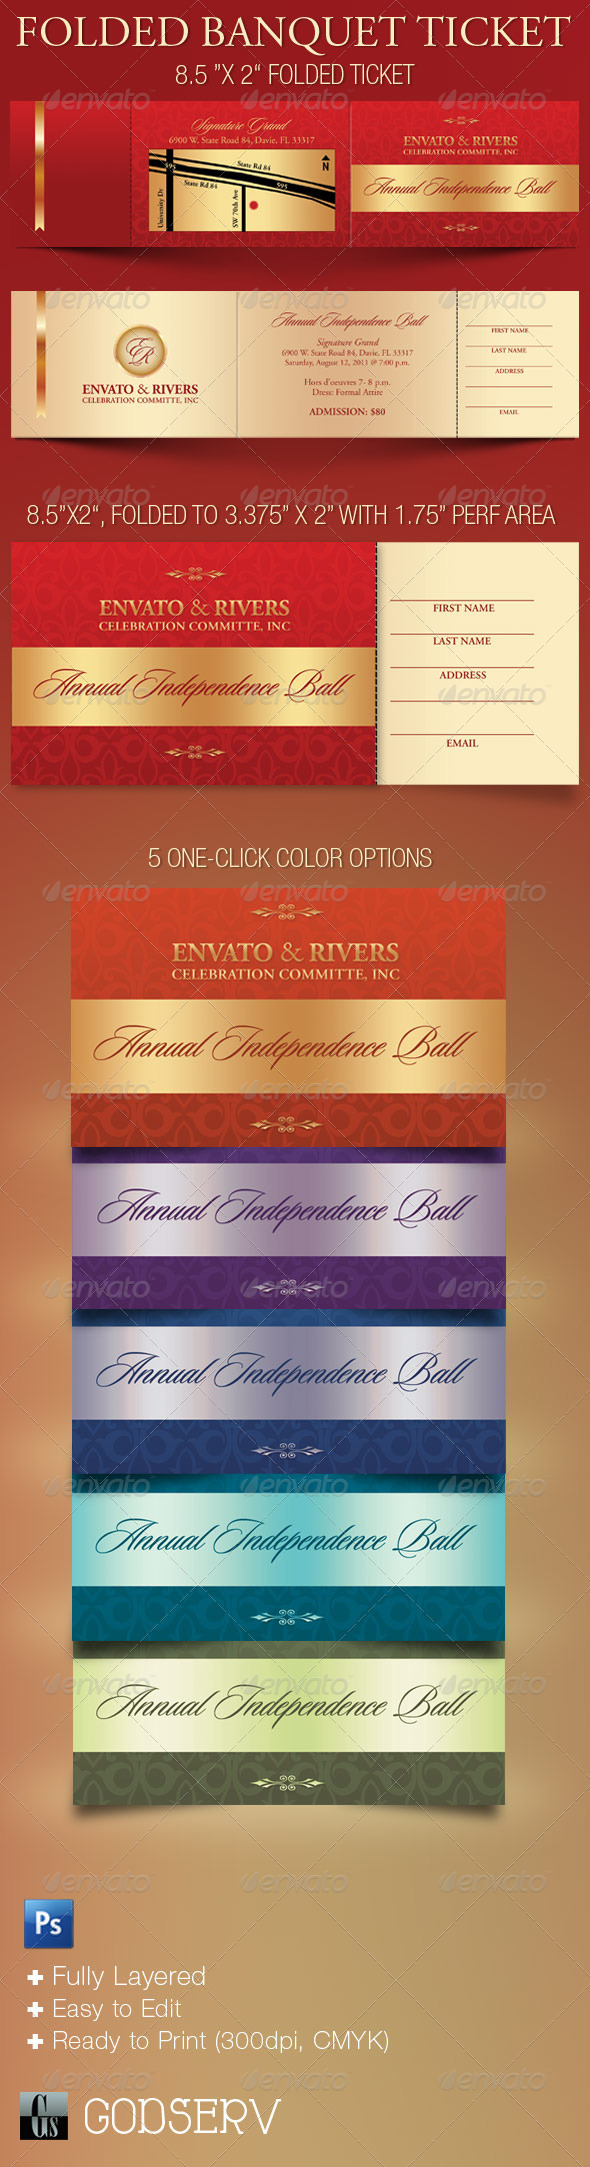 GraphicRiver Folded Banquet Ticket Template 1866422